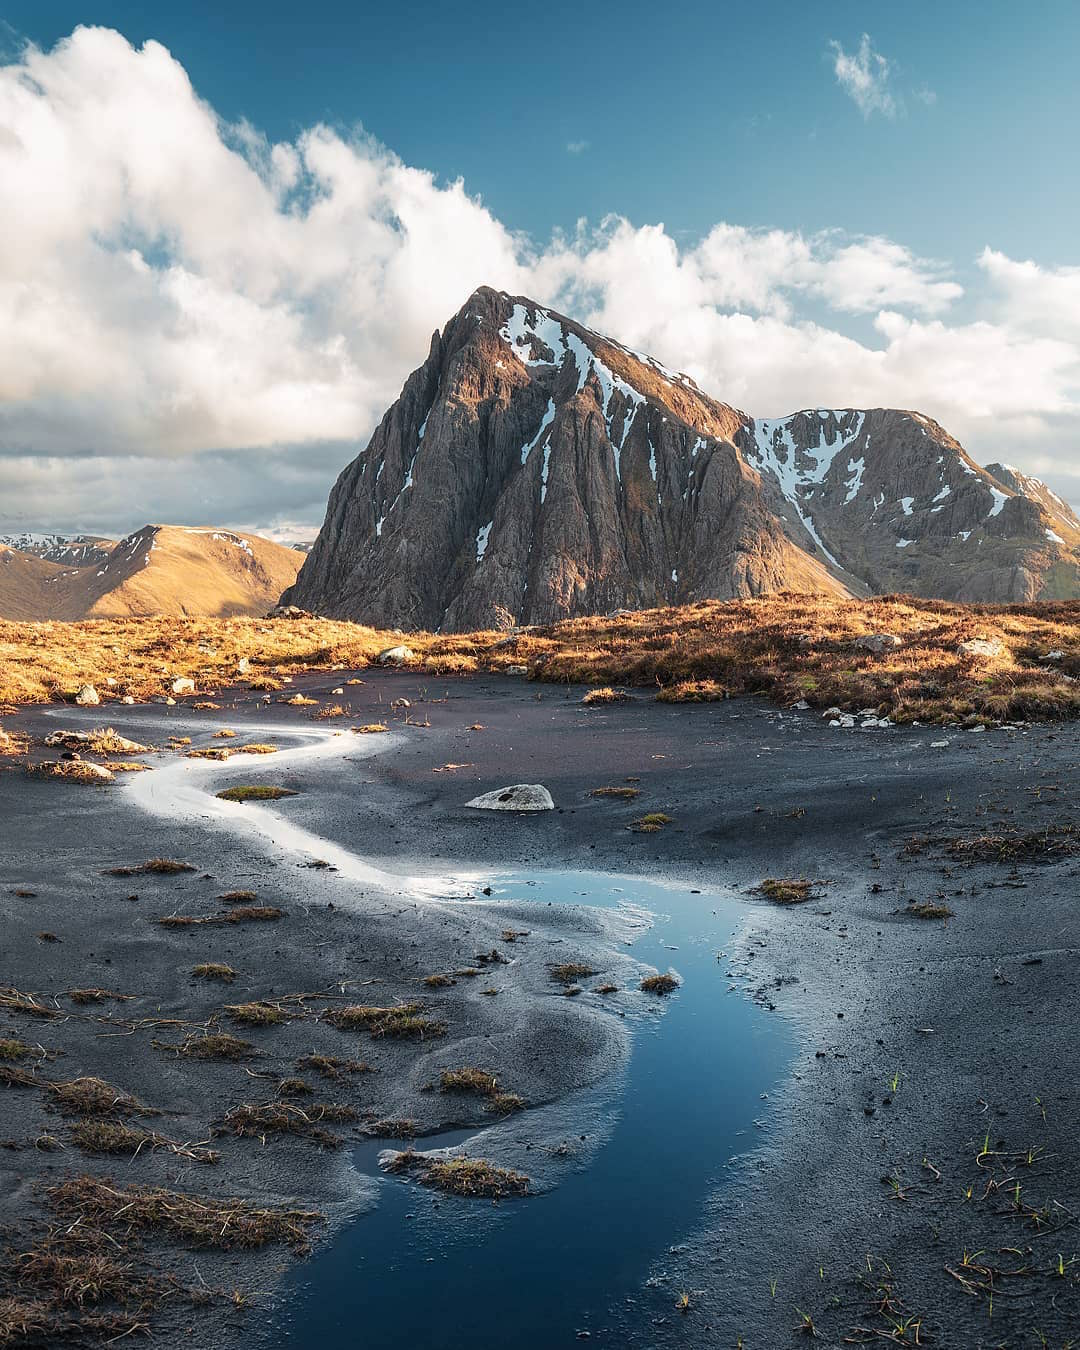 Landscape Photography by Lukas Furlan